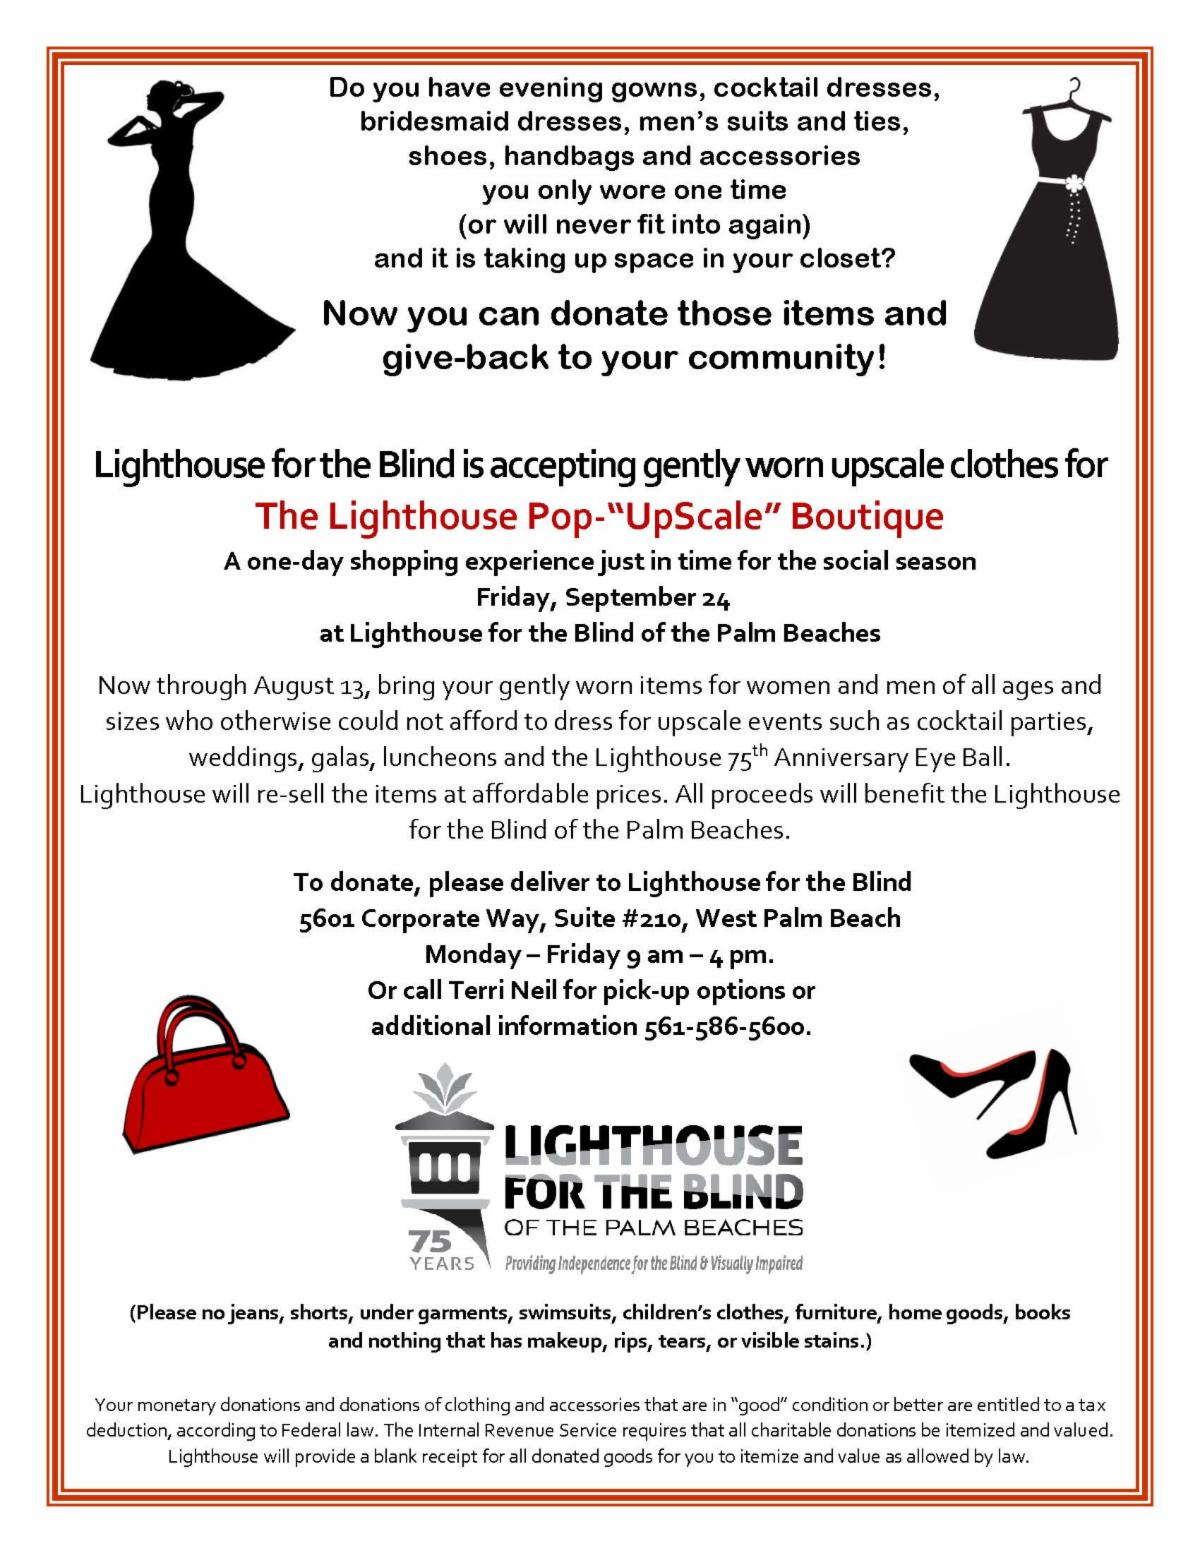 Image of a flyer asking for donations of gently worn evening wear from women and men for an upcoming event Lighthouse Pop Up Scale Boutique on September 24, 2021 at Lighthouse.